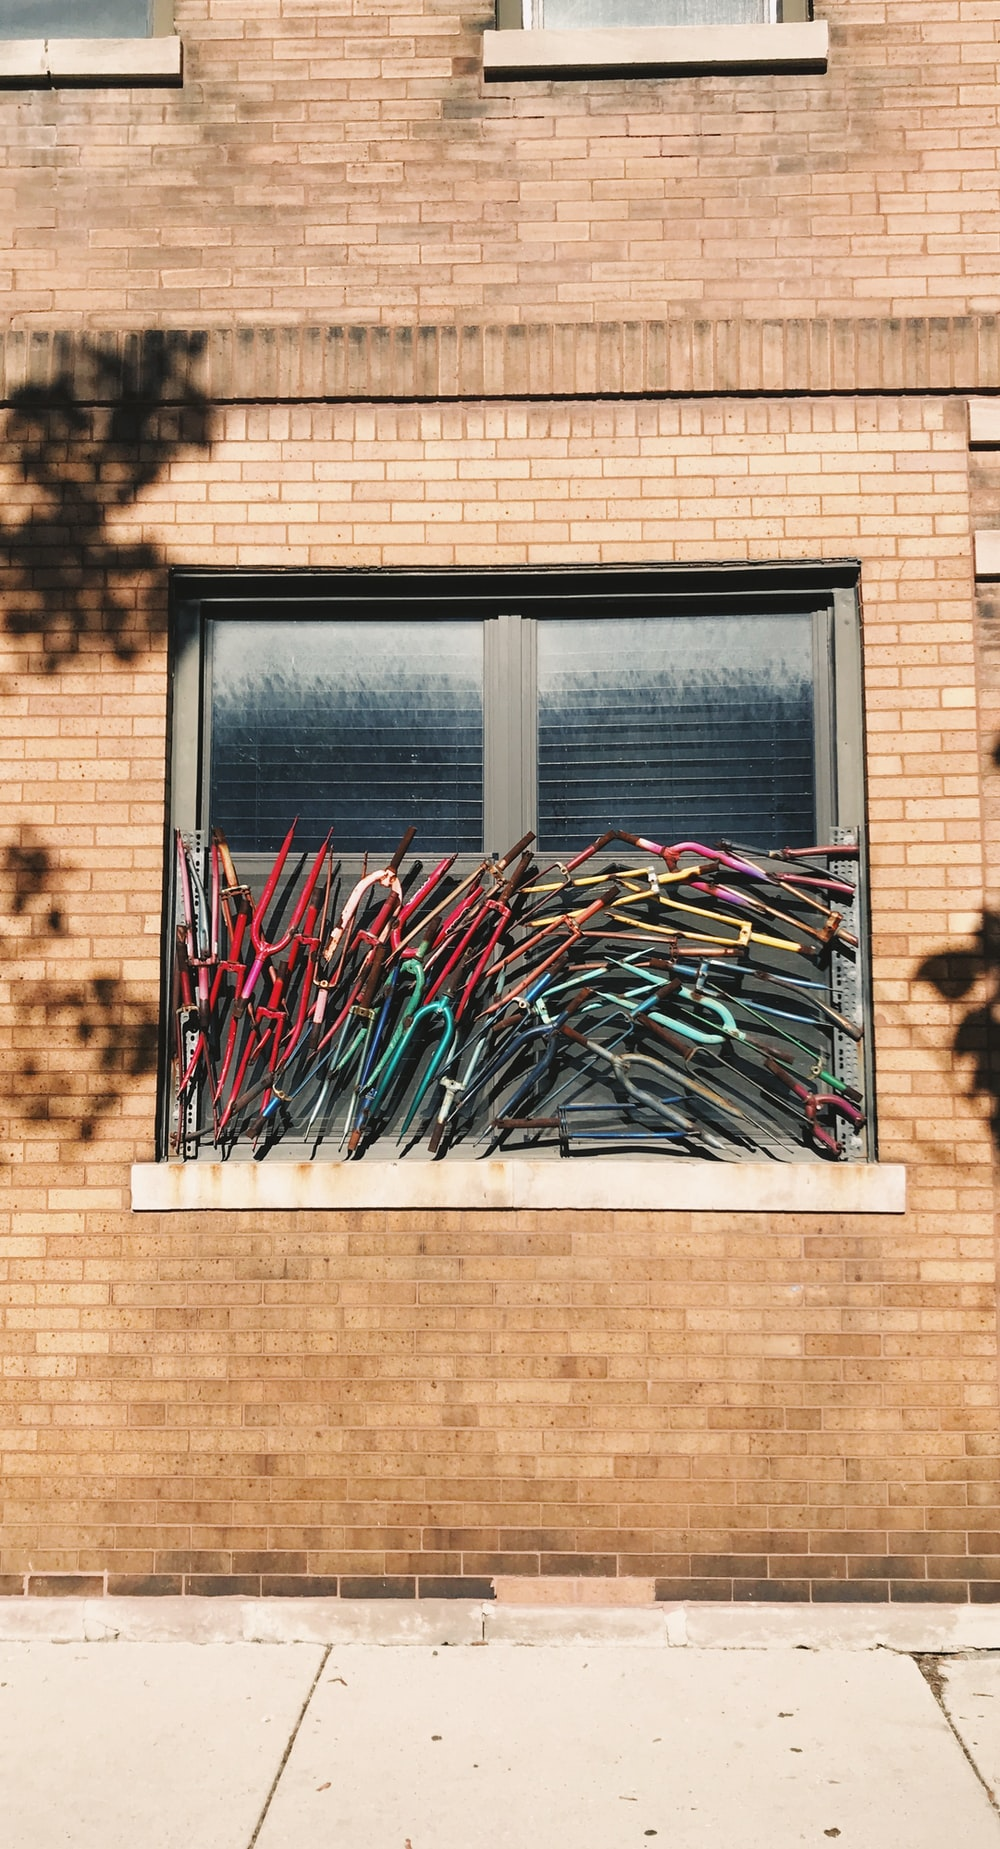 bicycle forks on window